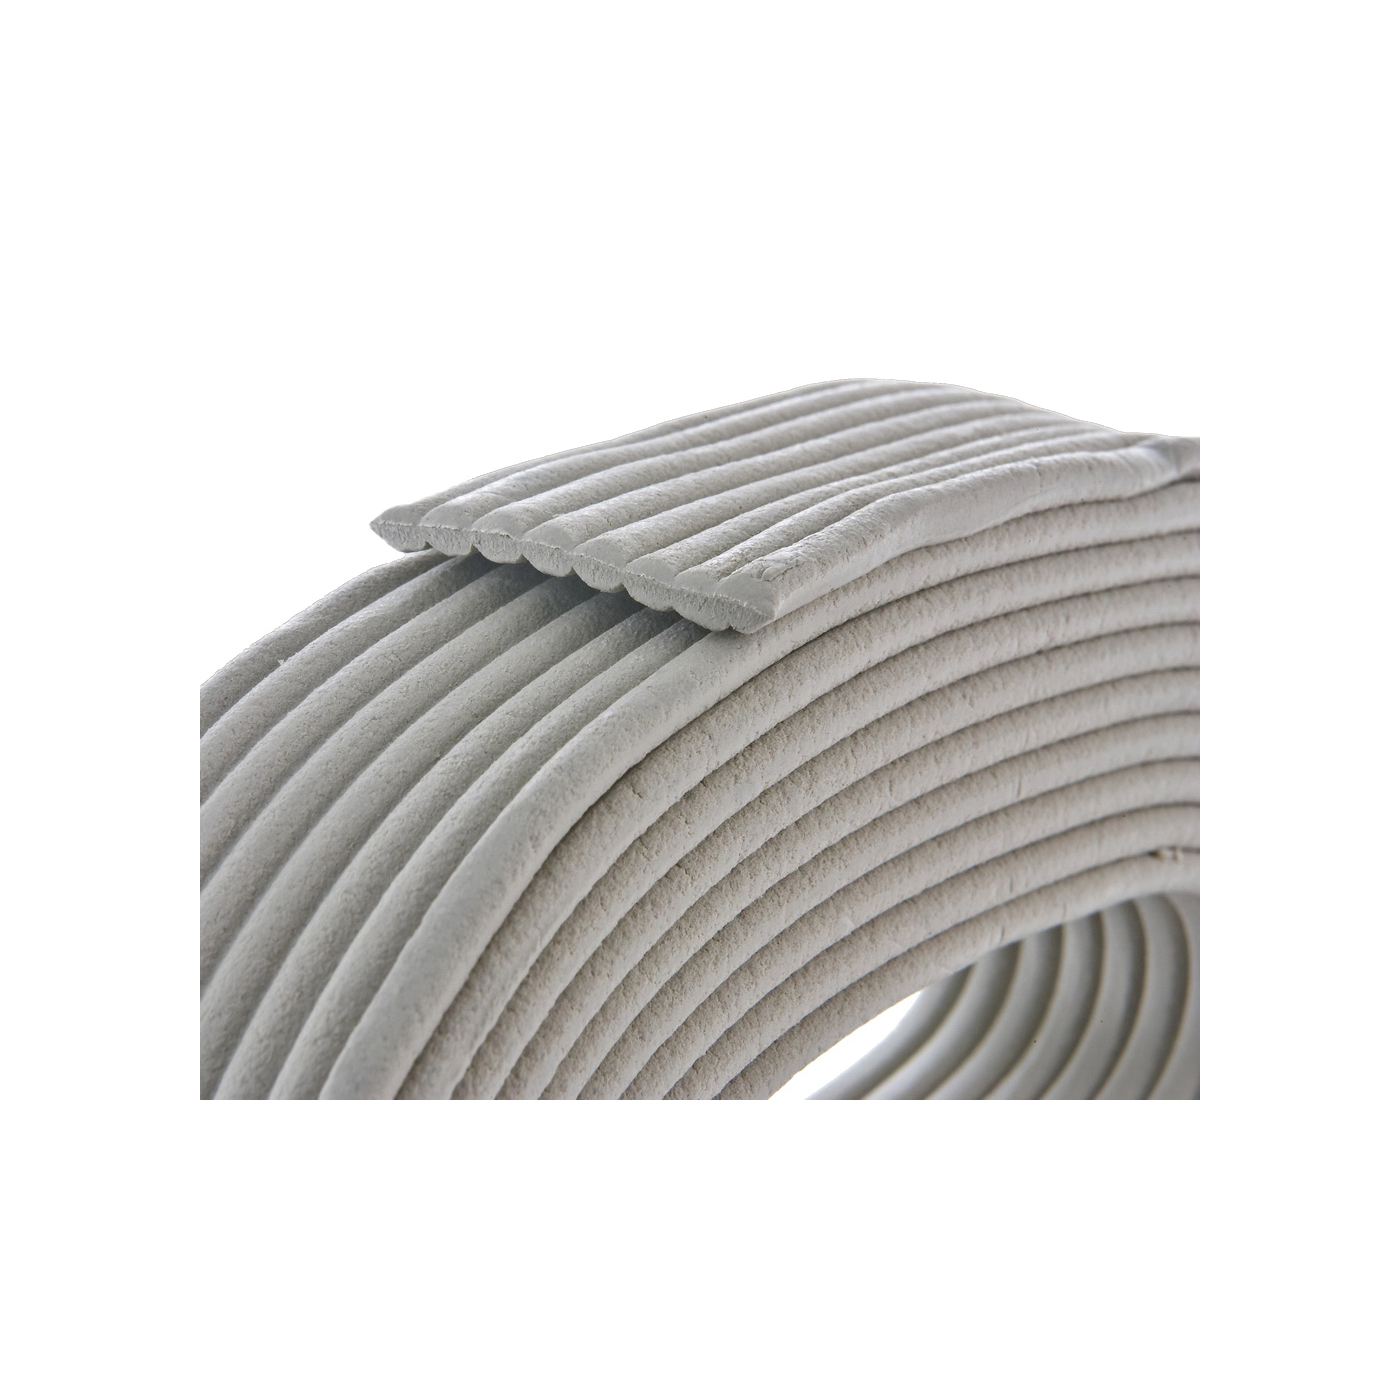 Picture of Frost King B2 Caulking Cord, 90 ft L, Vinyl, Gray